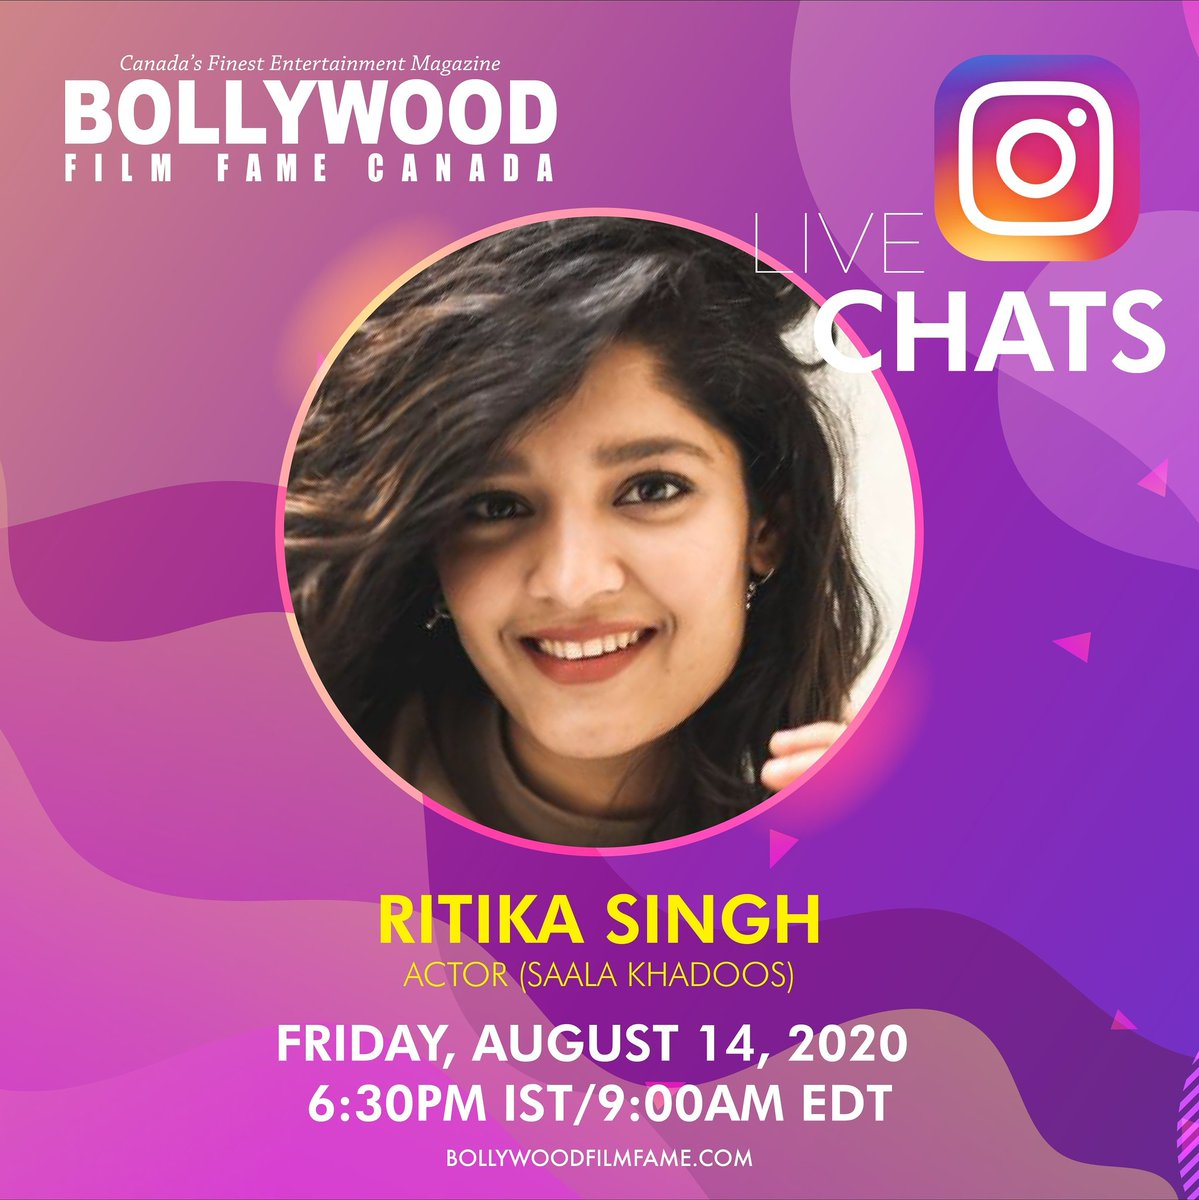 Super excited for our IG Live today with none other than @ritika_offl ! https://t.co/Ib8ujglPvN